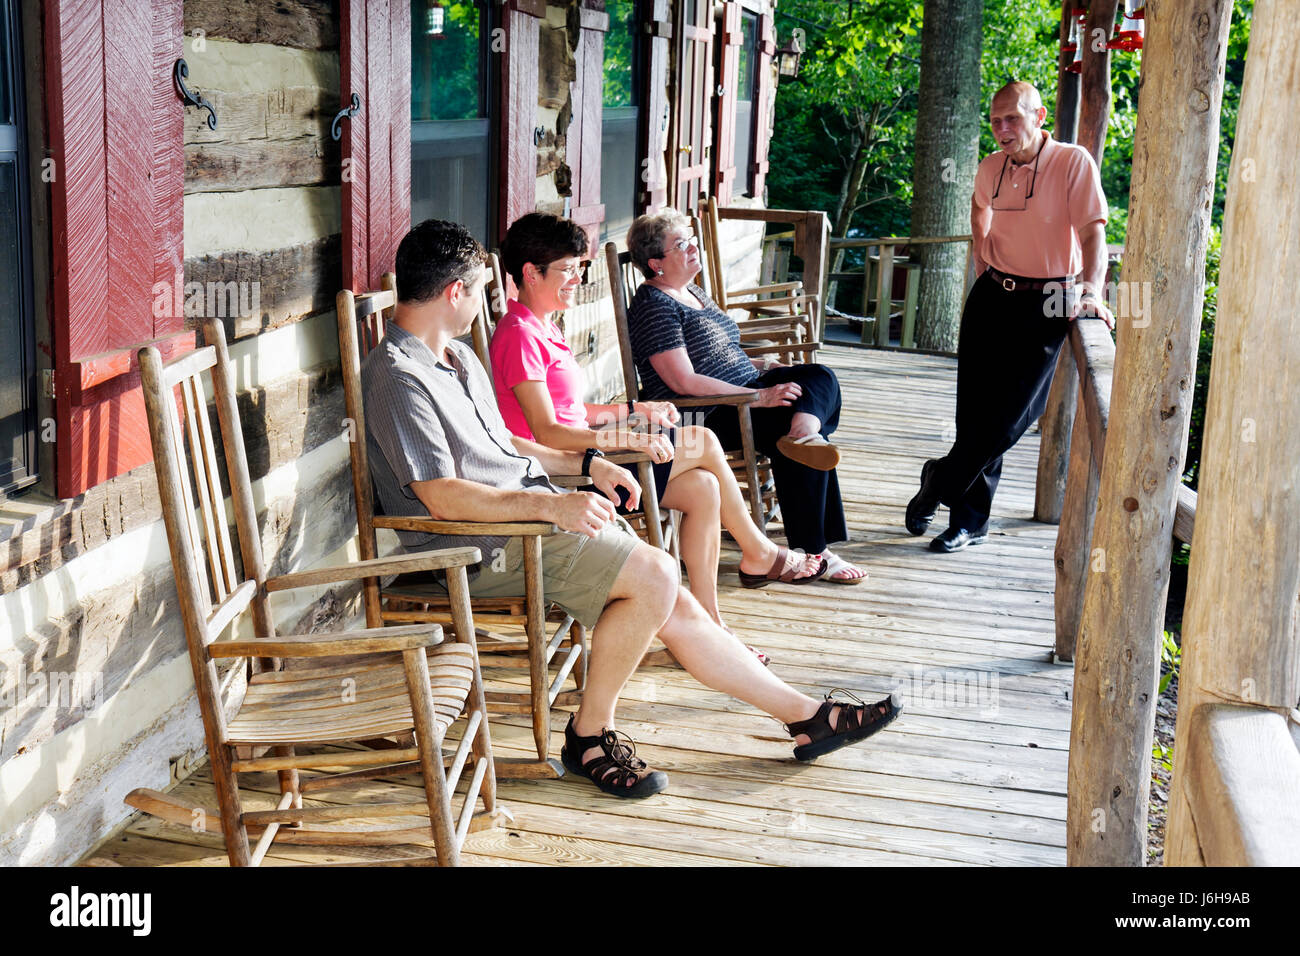 Virginia Steeles Tavern near Blue Ridge Parkway Sugar Tree Inn Bed and Breakfast lodging rustic veranda rocking - Stock Image